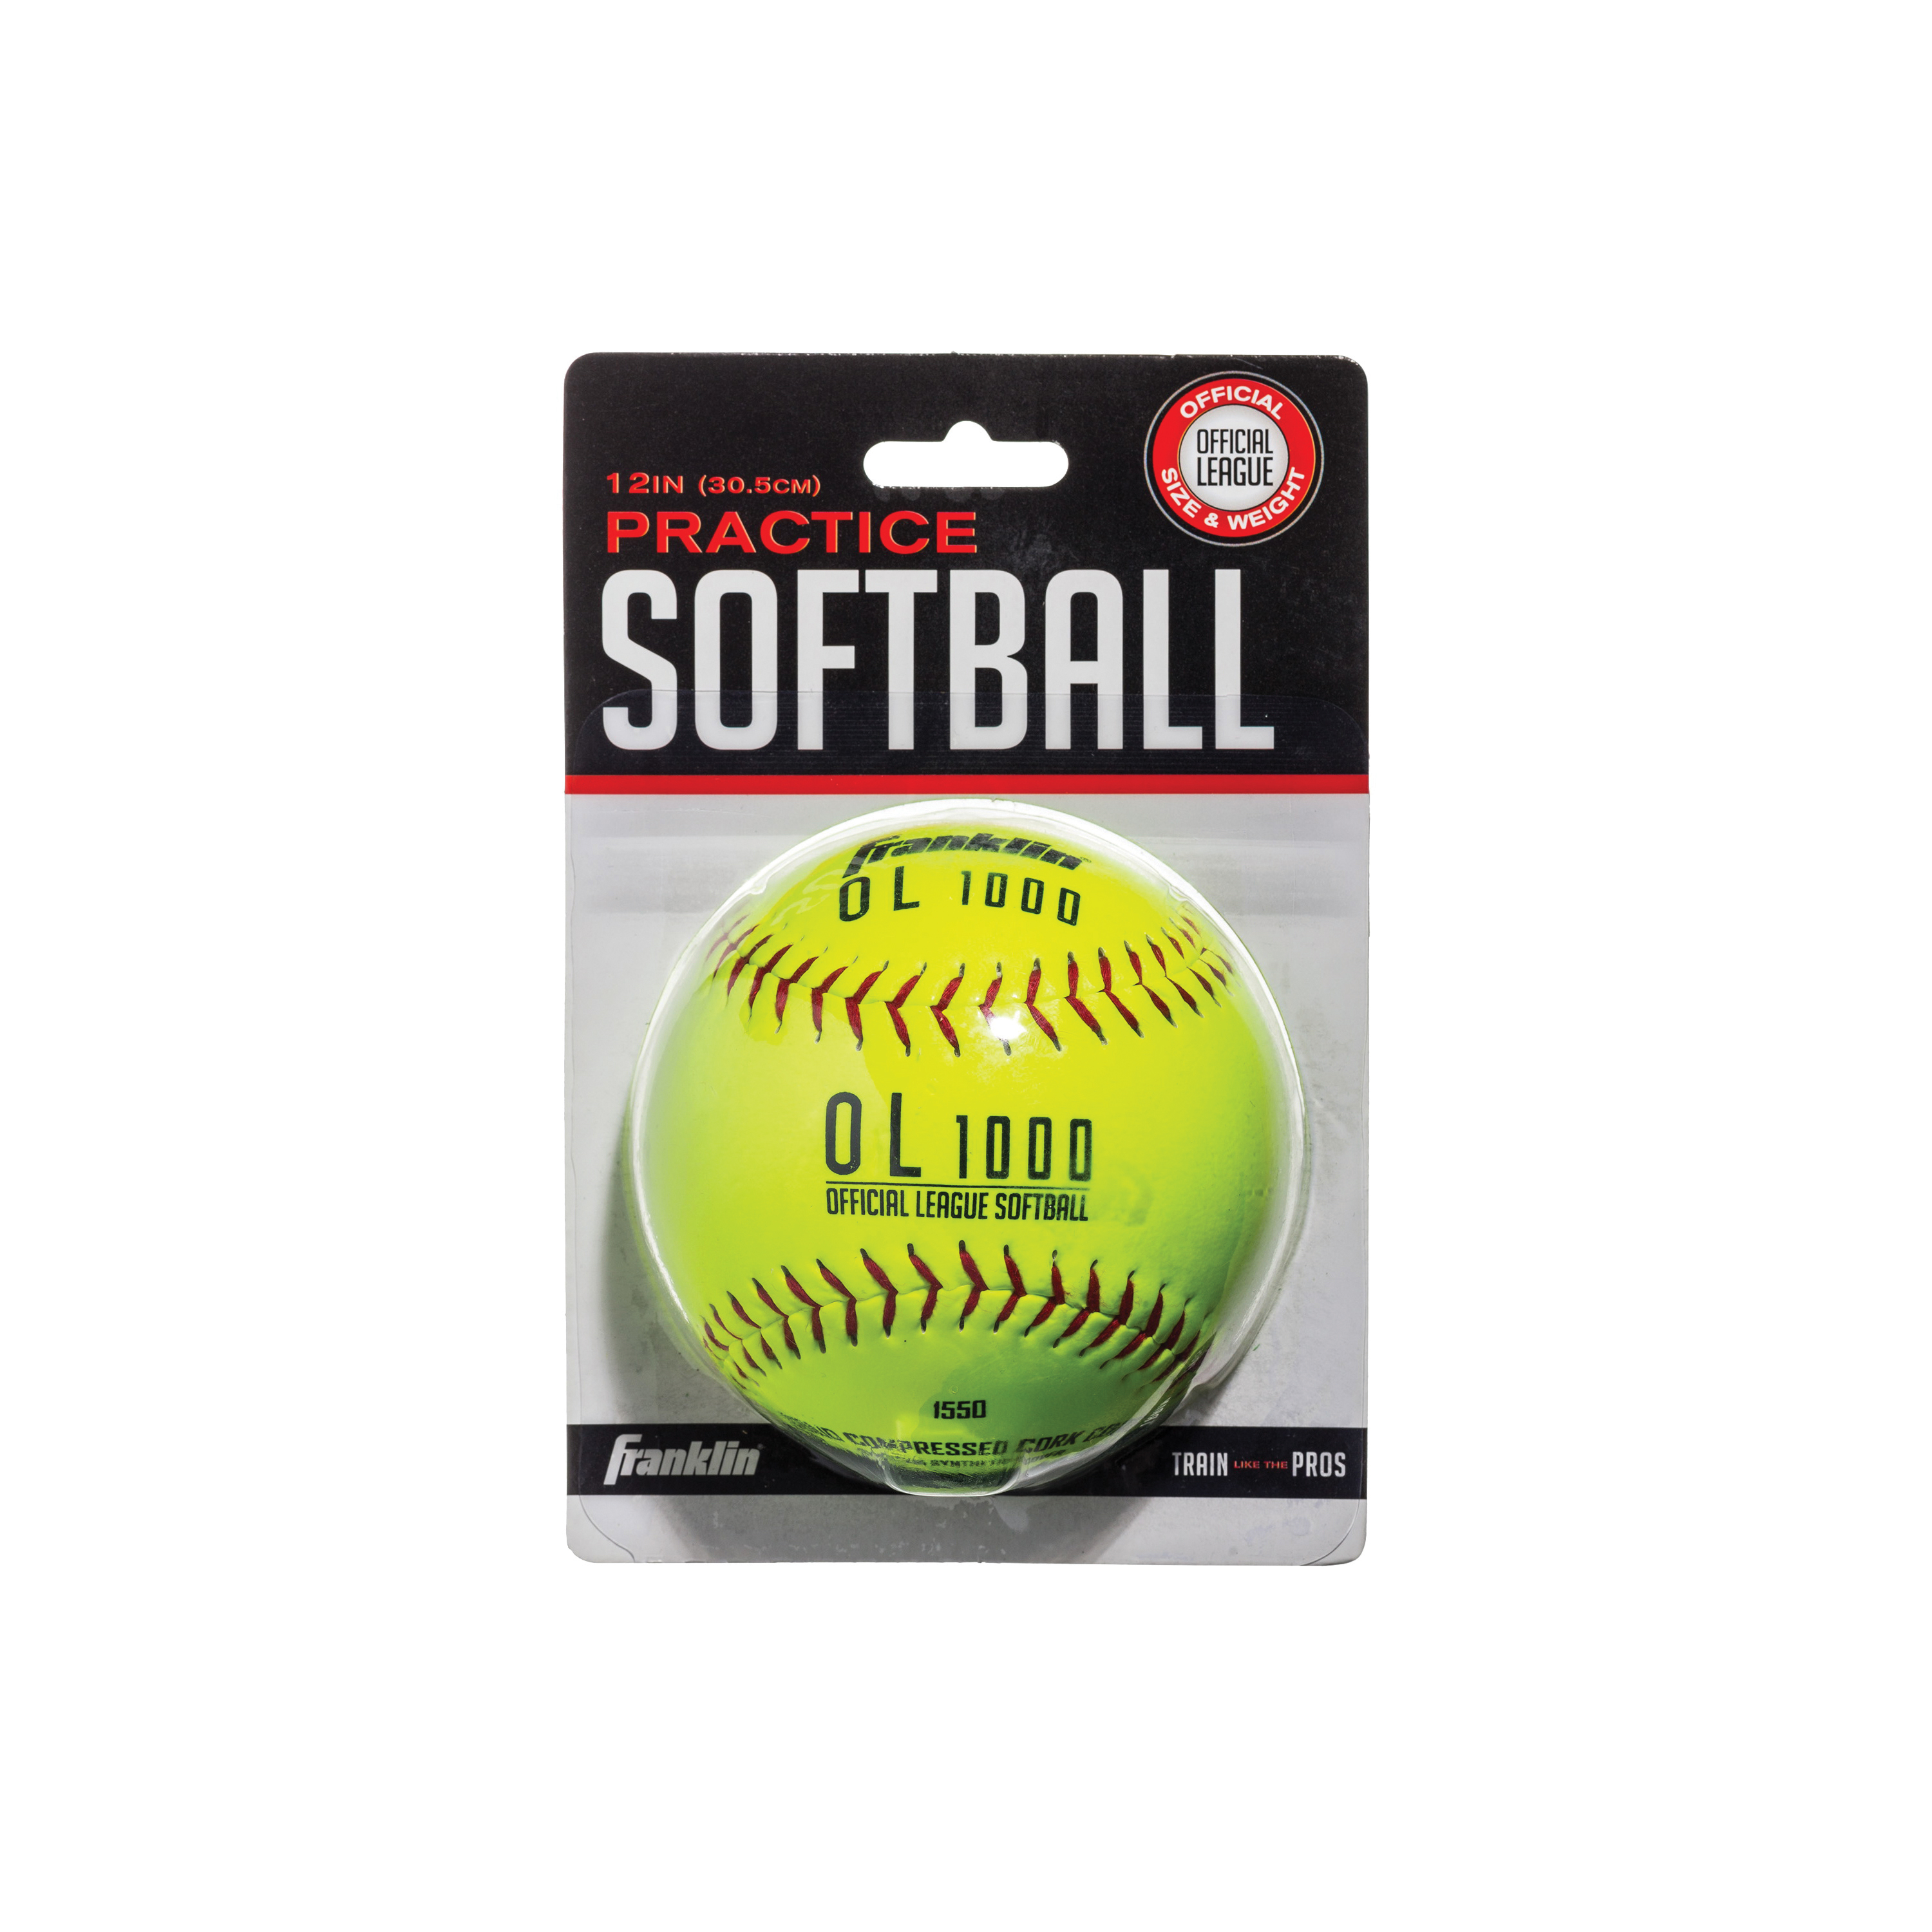 Picture of Franklin Sports OL 1000 10981 Soft Ball, 12 in Dia, Synthetic, 12, Blister